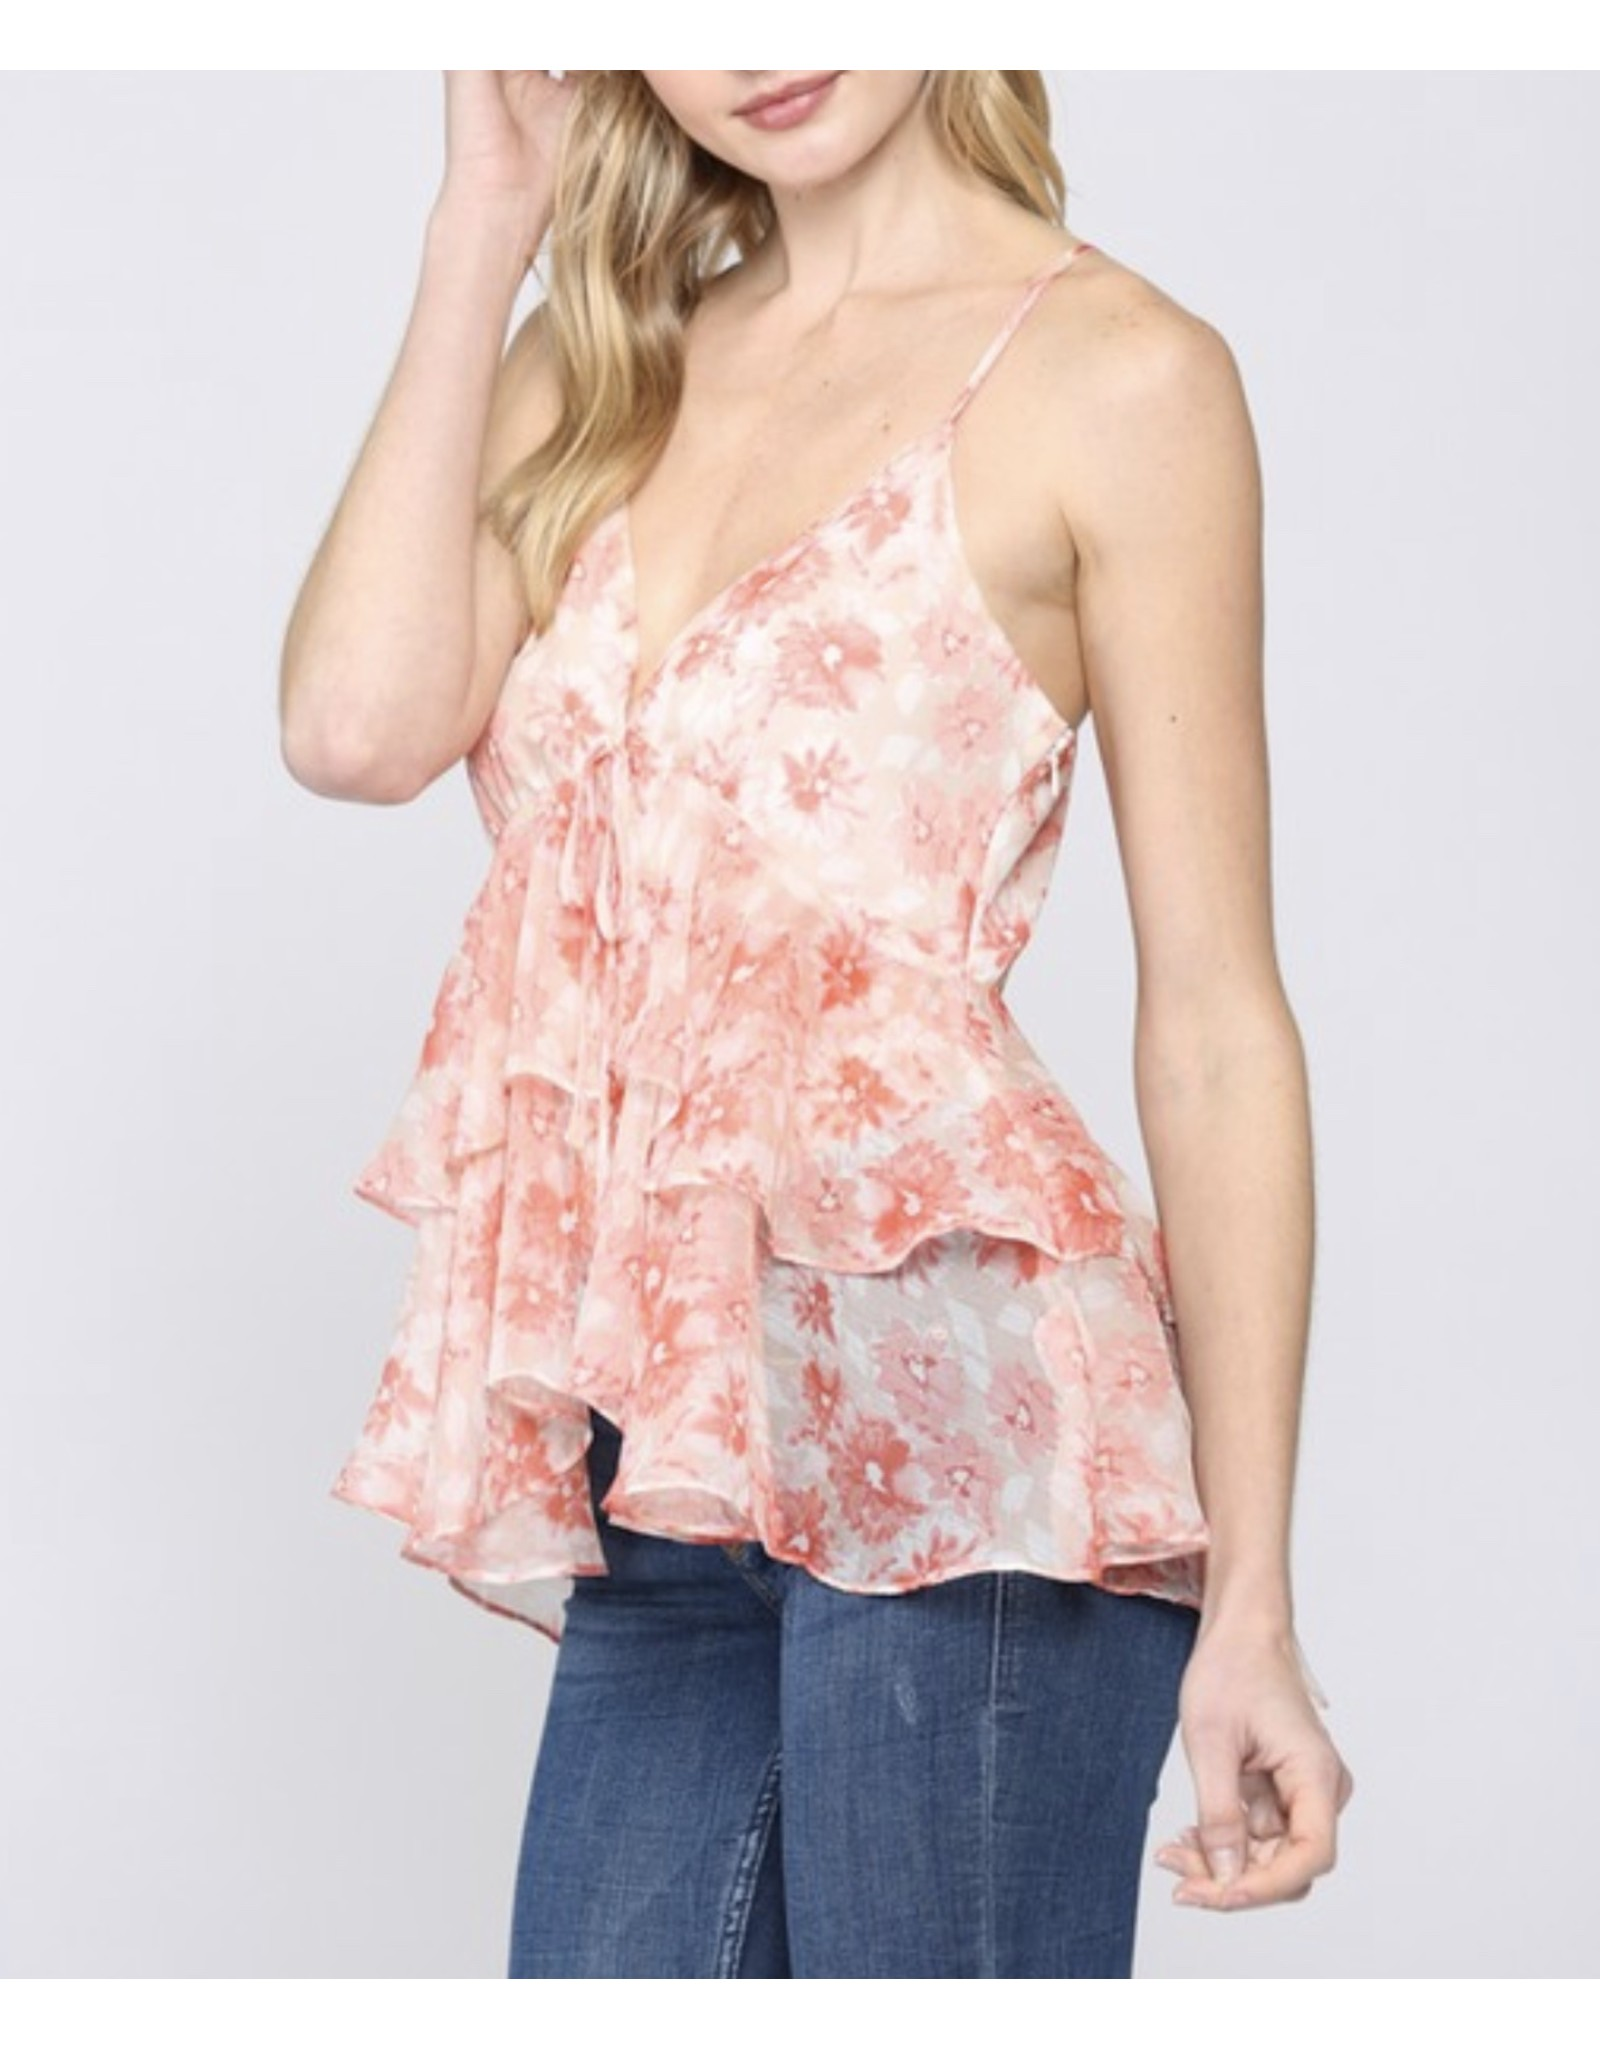 Floral Chiffon Top - Coral